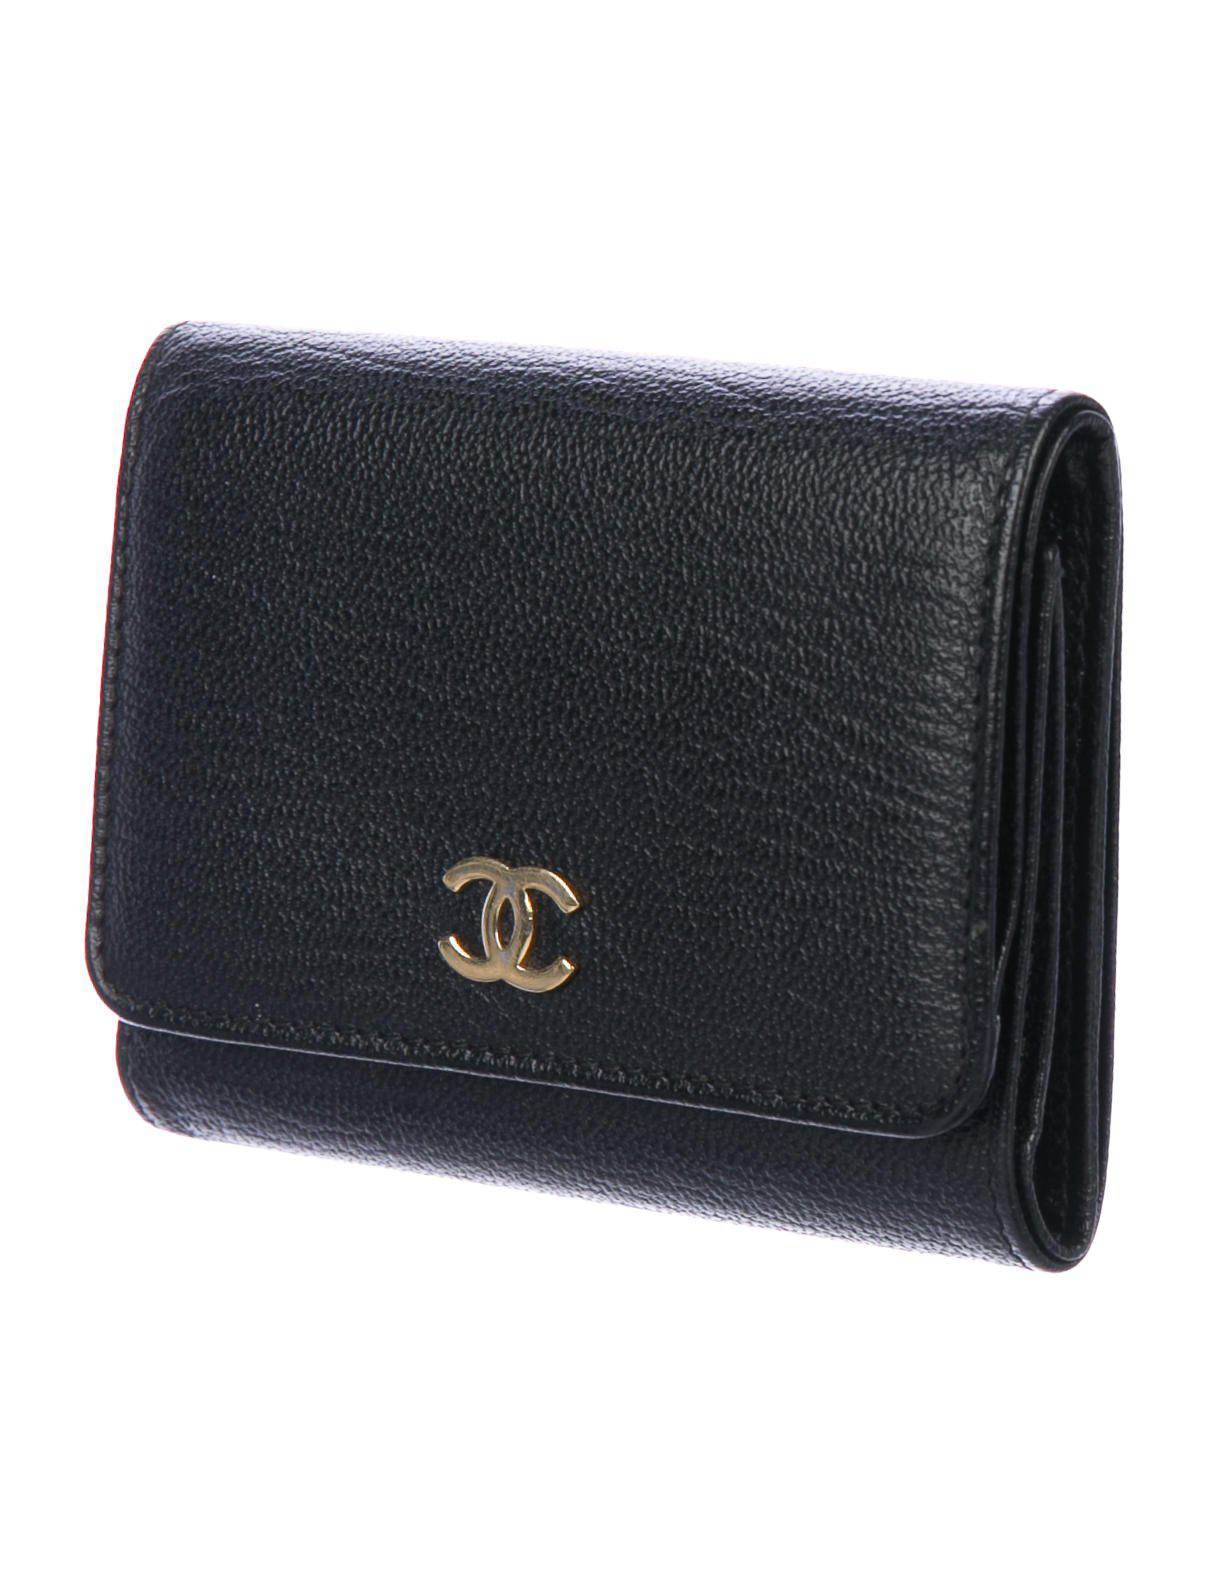 Lyst chanel cc business card holder black in metallic gallery reheart Choice Image